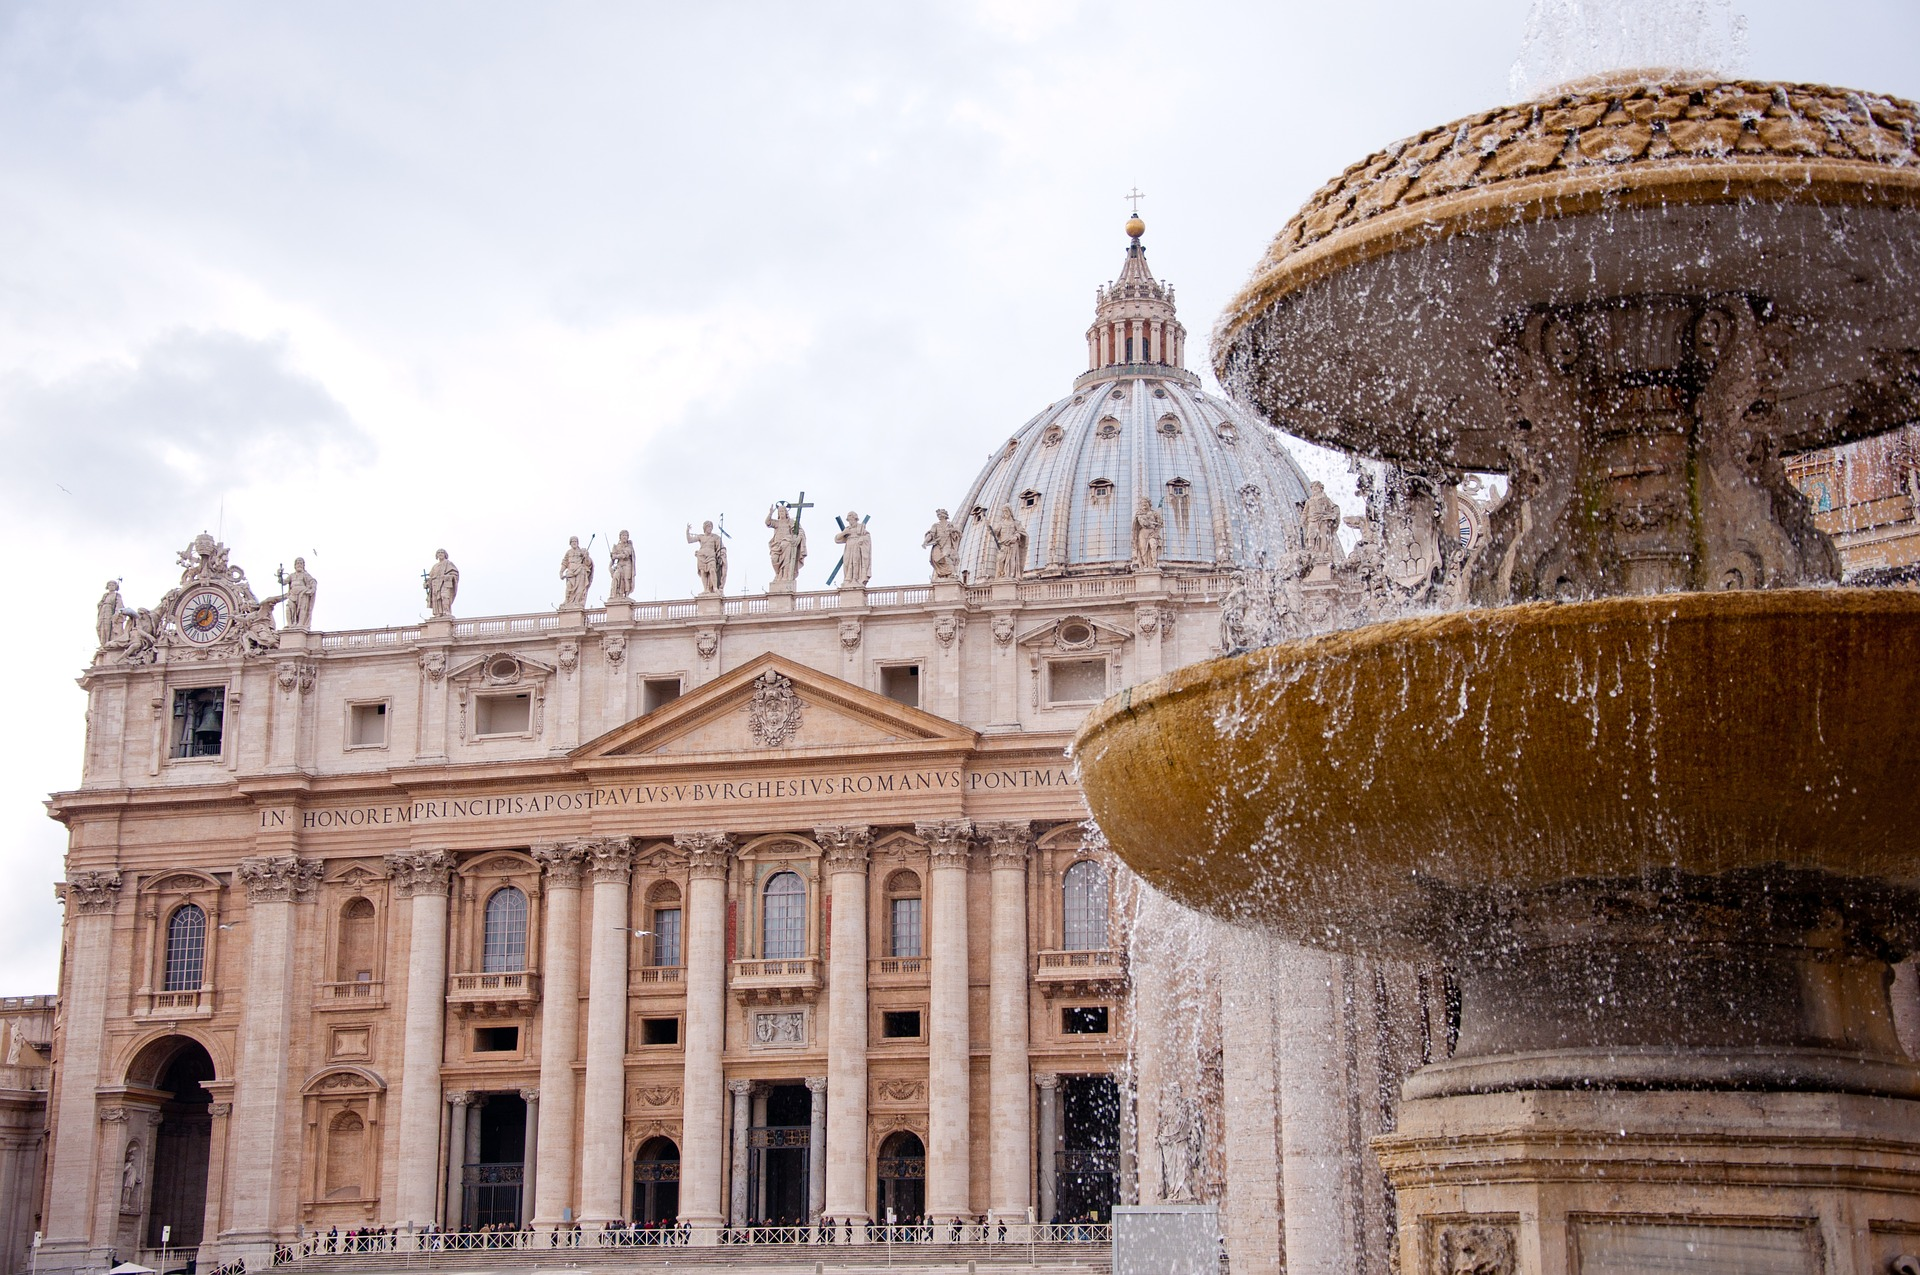 st-peters-basilica-2875093_1920